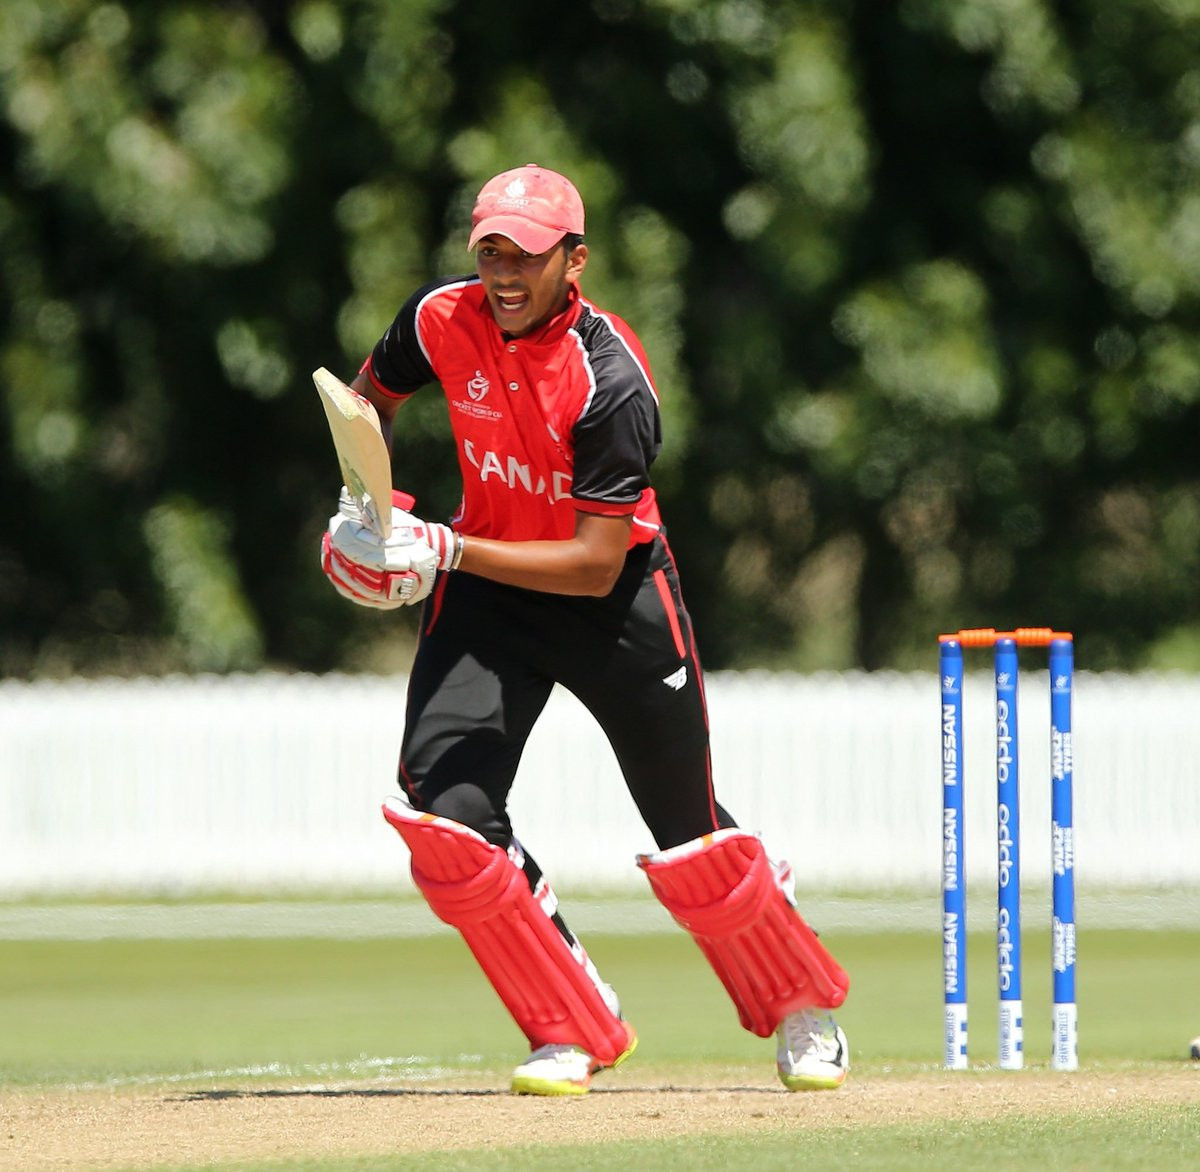 Two plate semi-finalists confirmed at ICC Under-19 Cricket World Cup